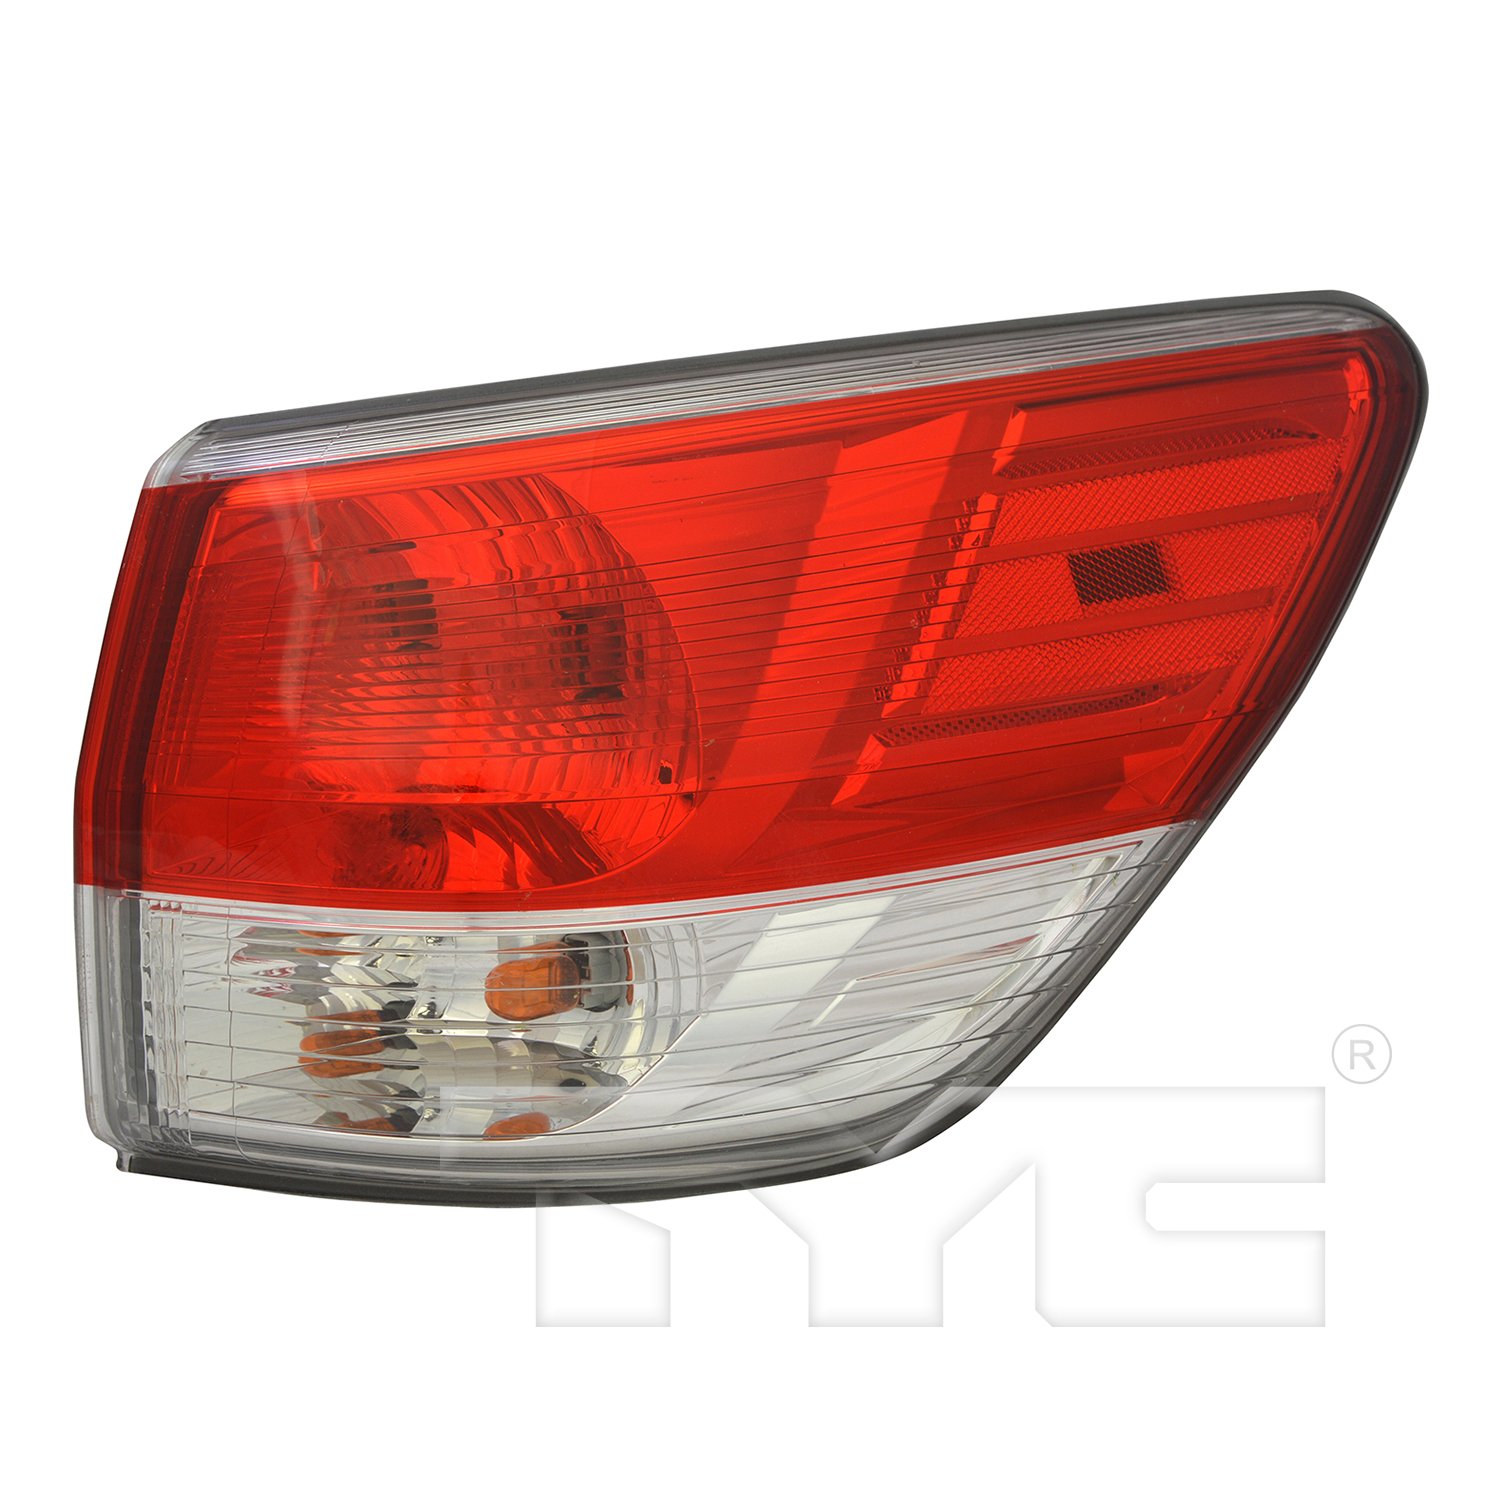 TYC 11-6568-00-1 Nissan Pathfinder Replacement Tail Lamp